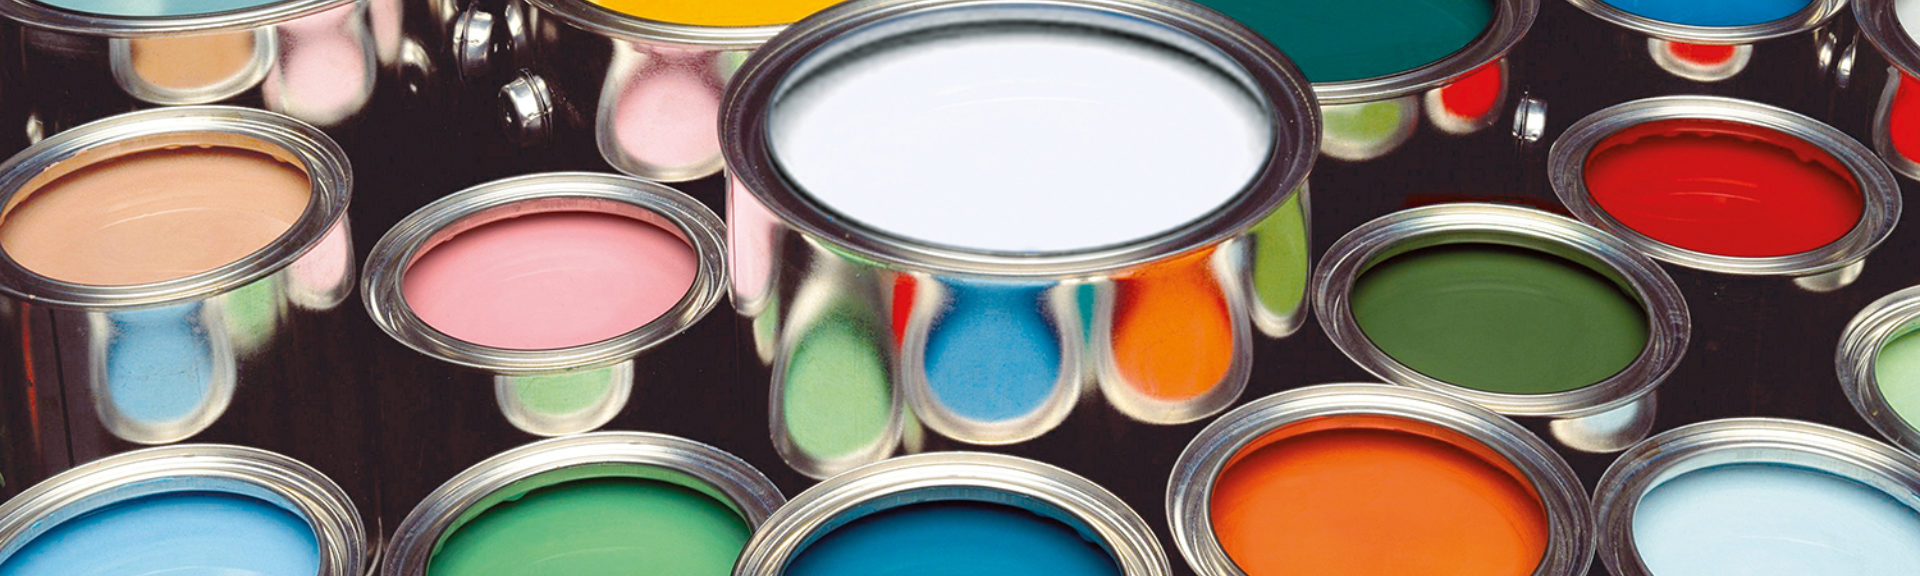 Cans of paint in multiple colors